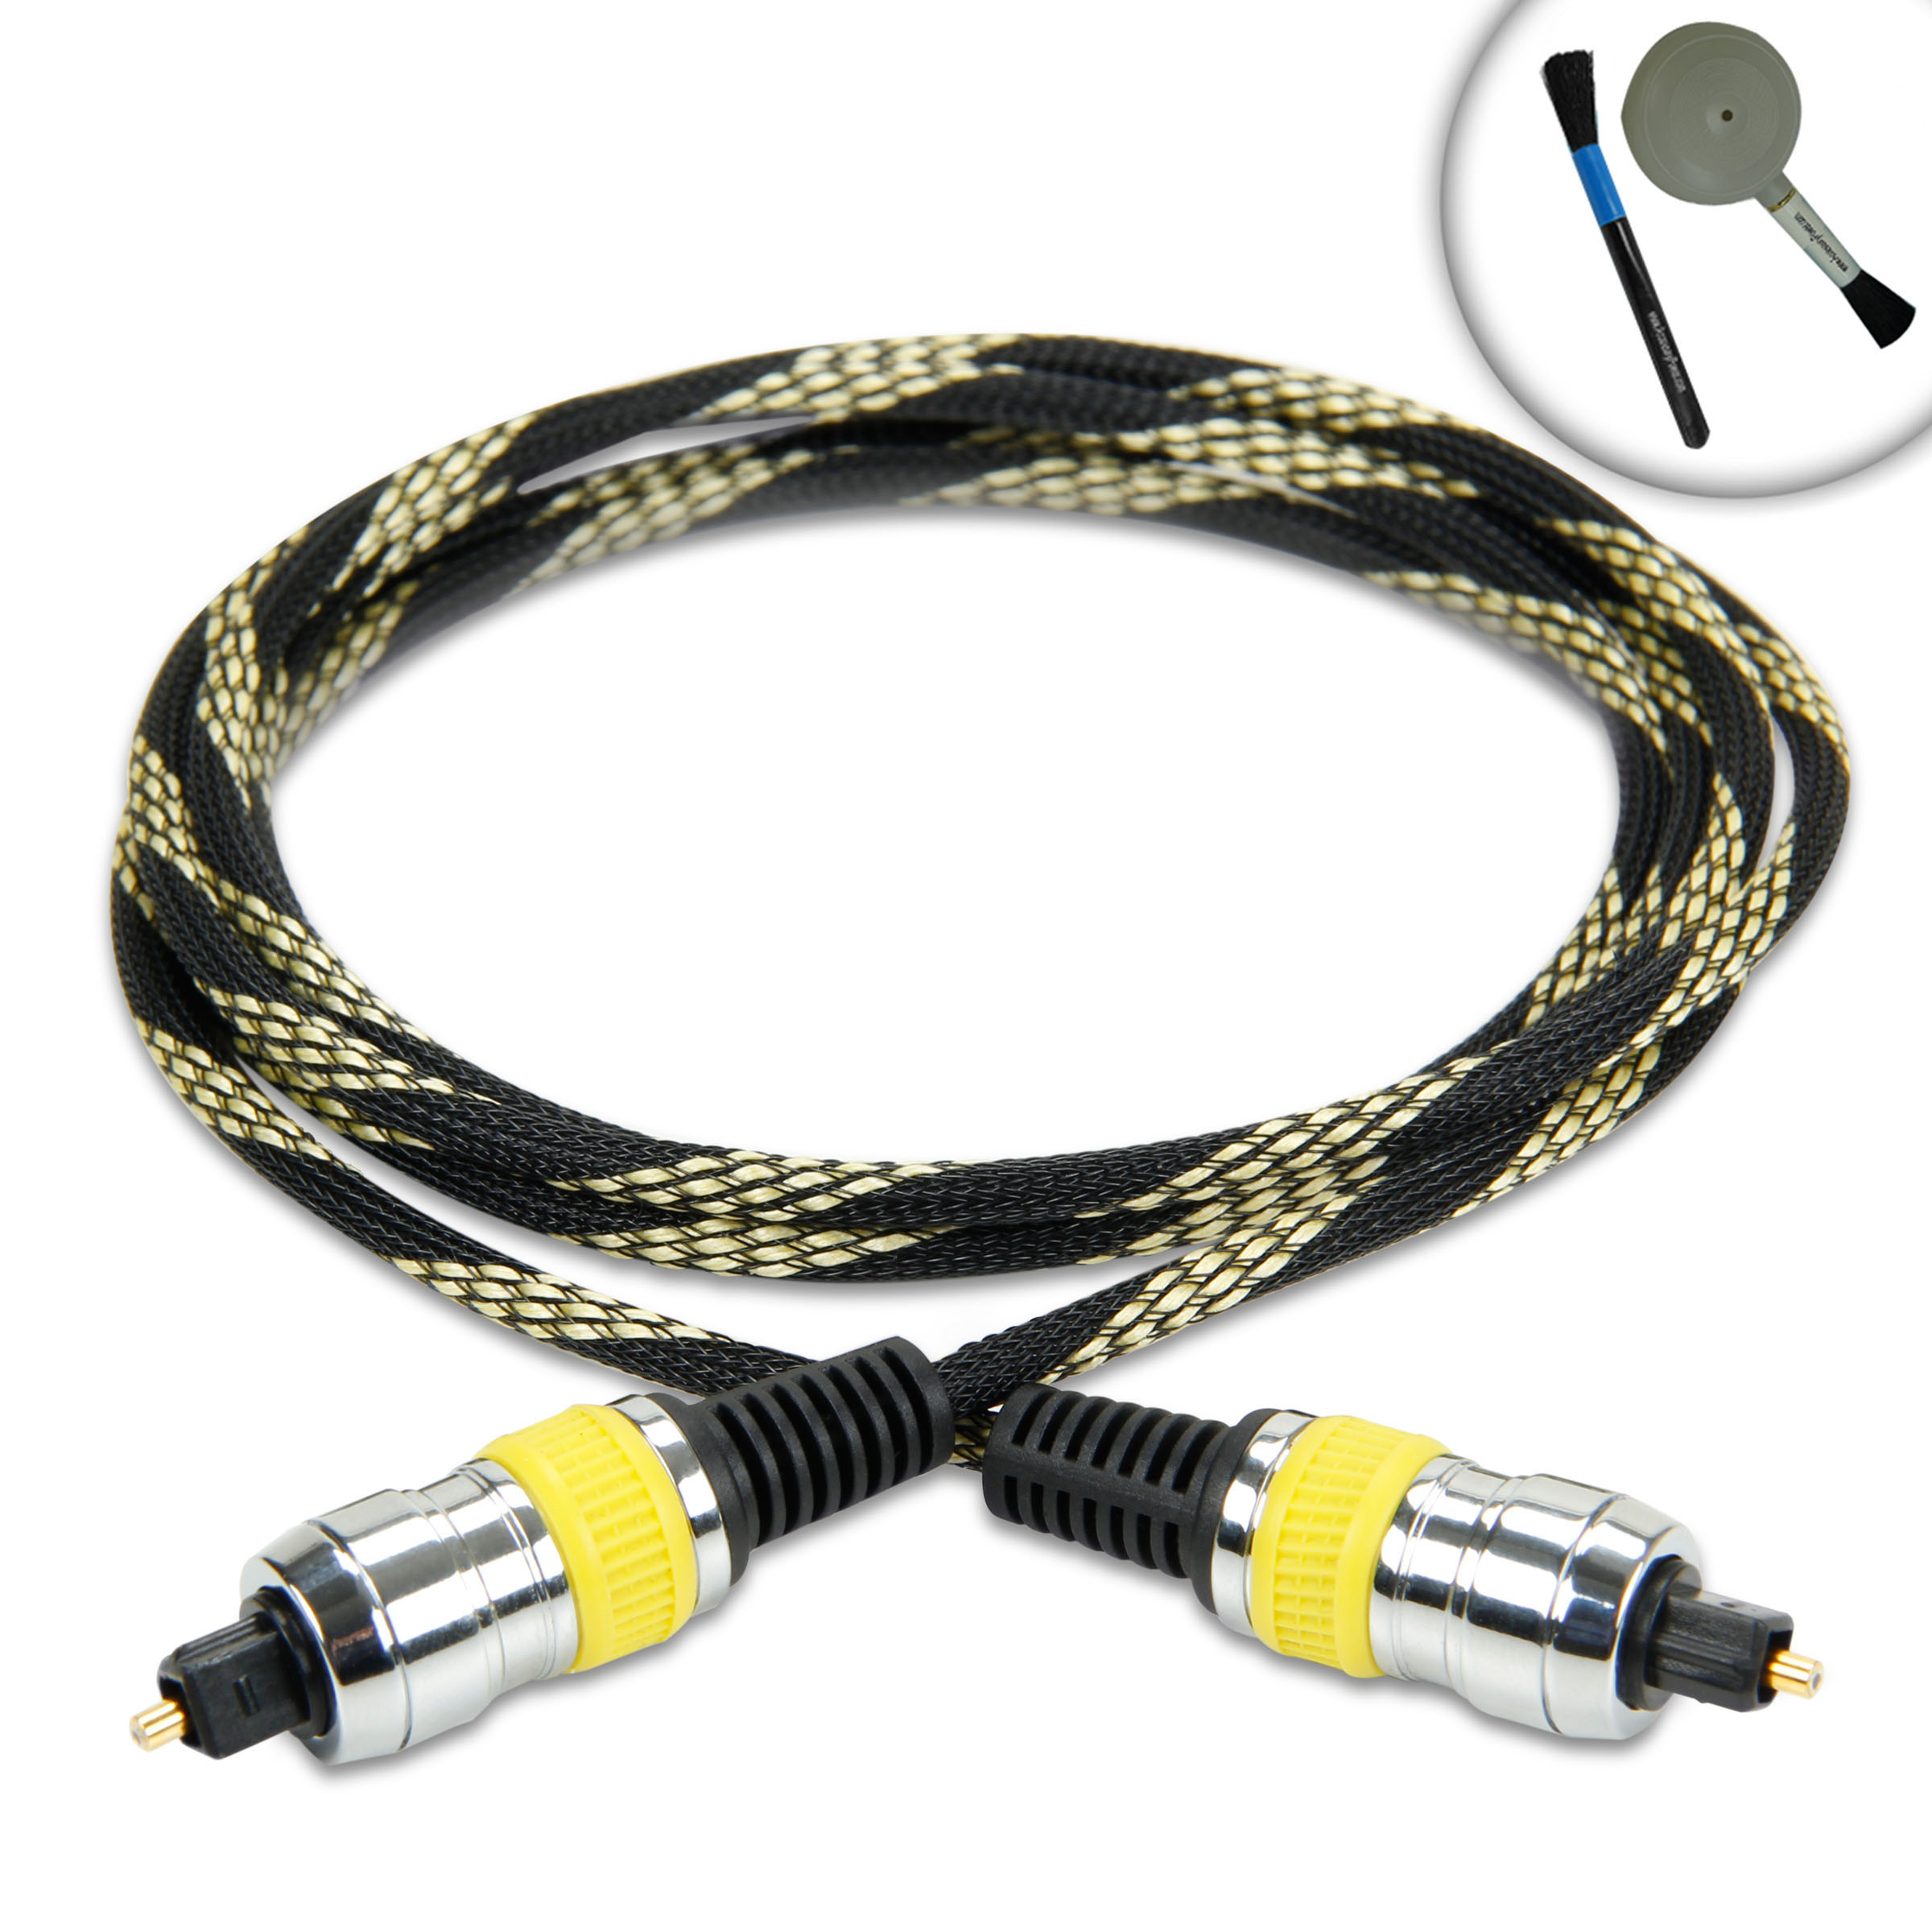 DATASTREAM Digital Audio Optical TOSLink Cable (6') w  High Fidelity Audio Transfer & Nylon Braided Cable Works with... by Accessory Power